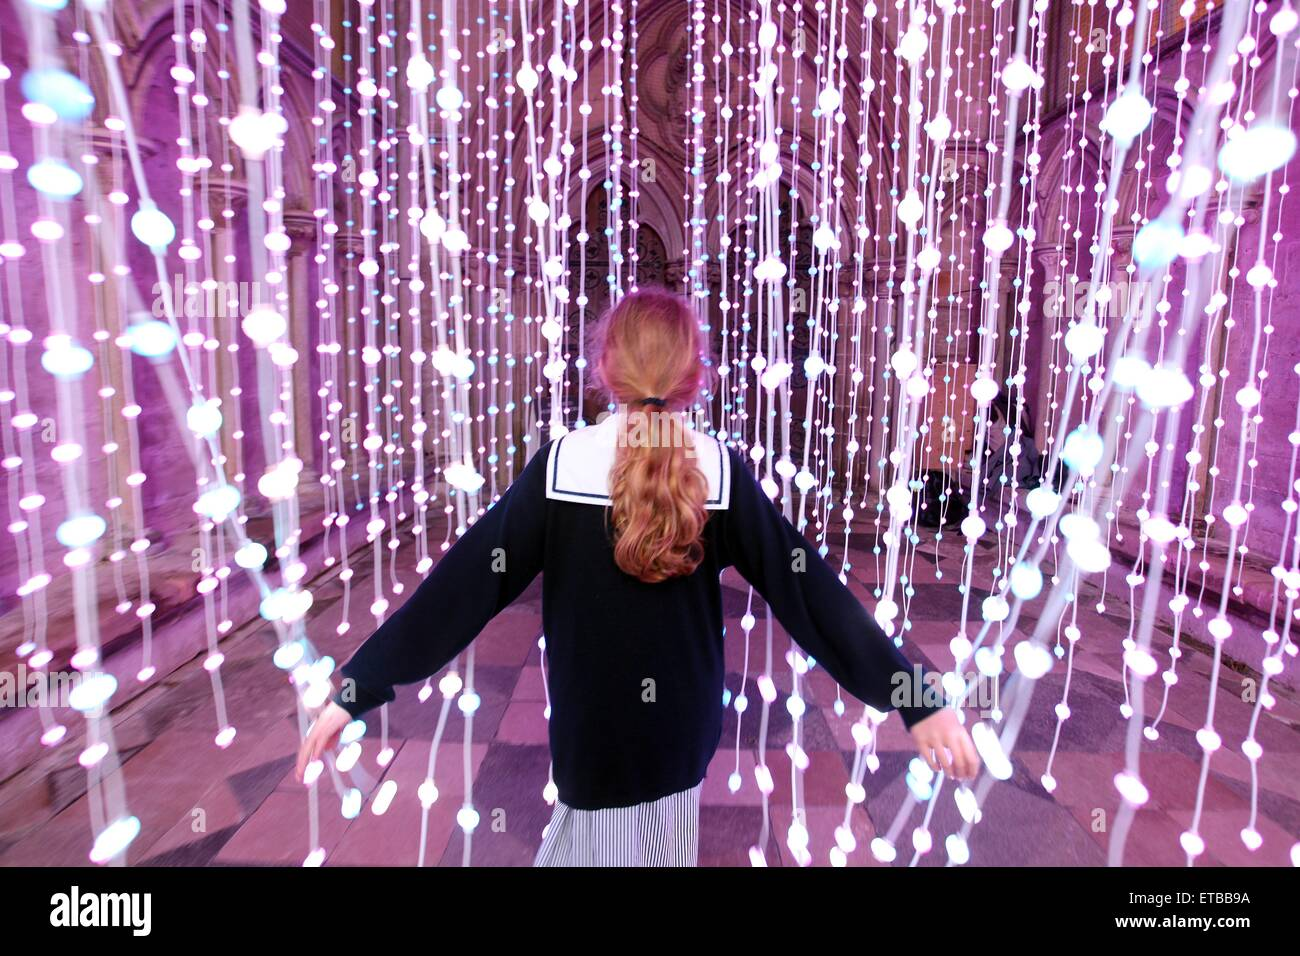 Salisbury, Wiltshire, UK. 12th June, 2015. A schoolgirl passes through an installation titled ENLIGHTENMENT in the - Stock Image